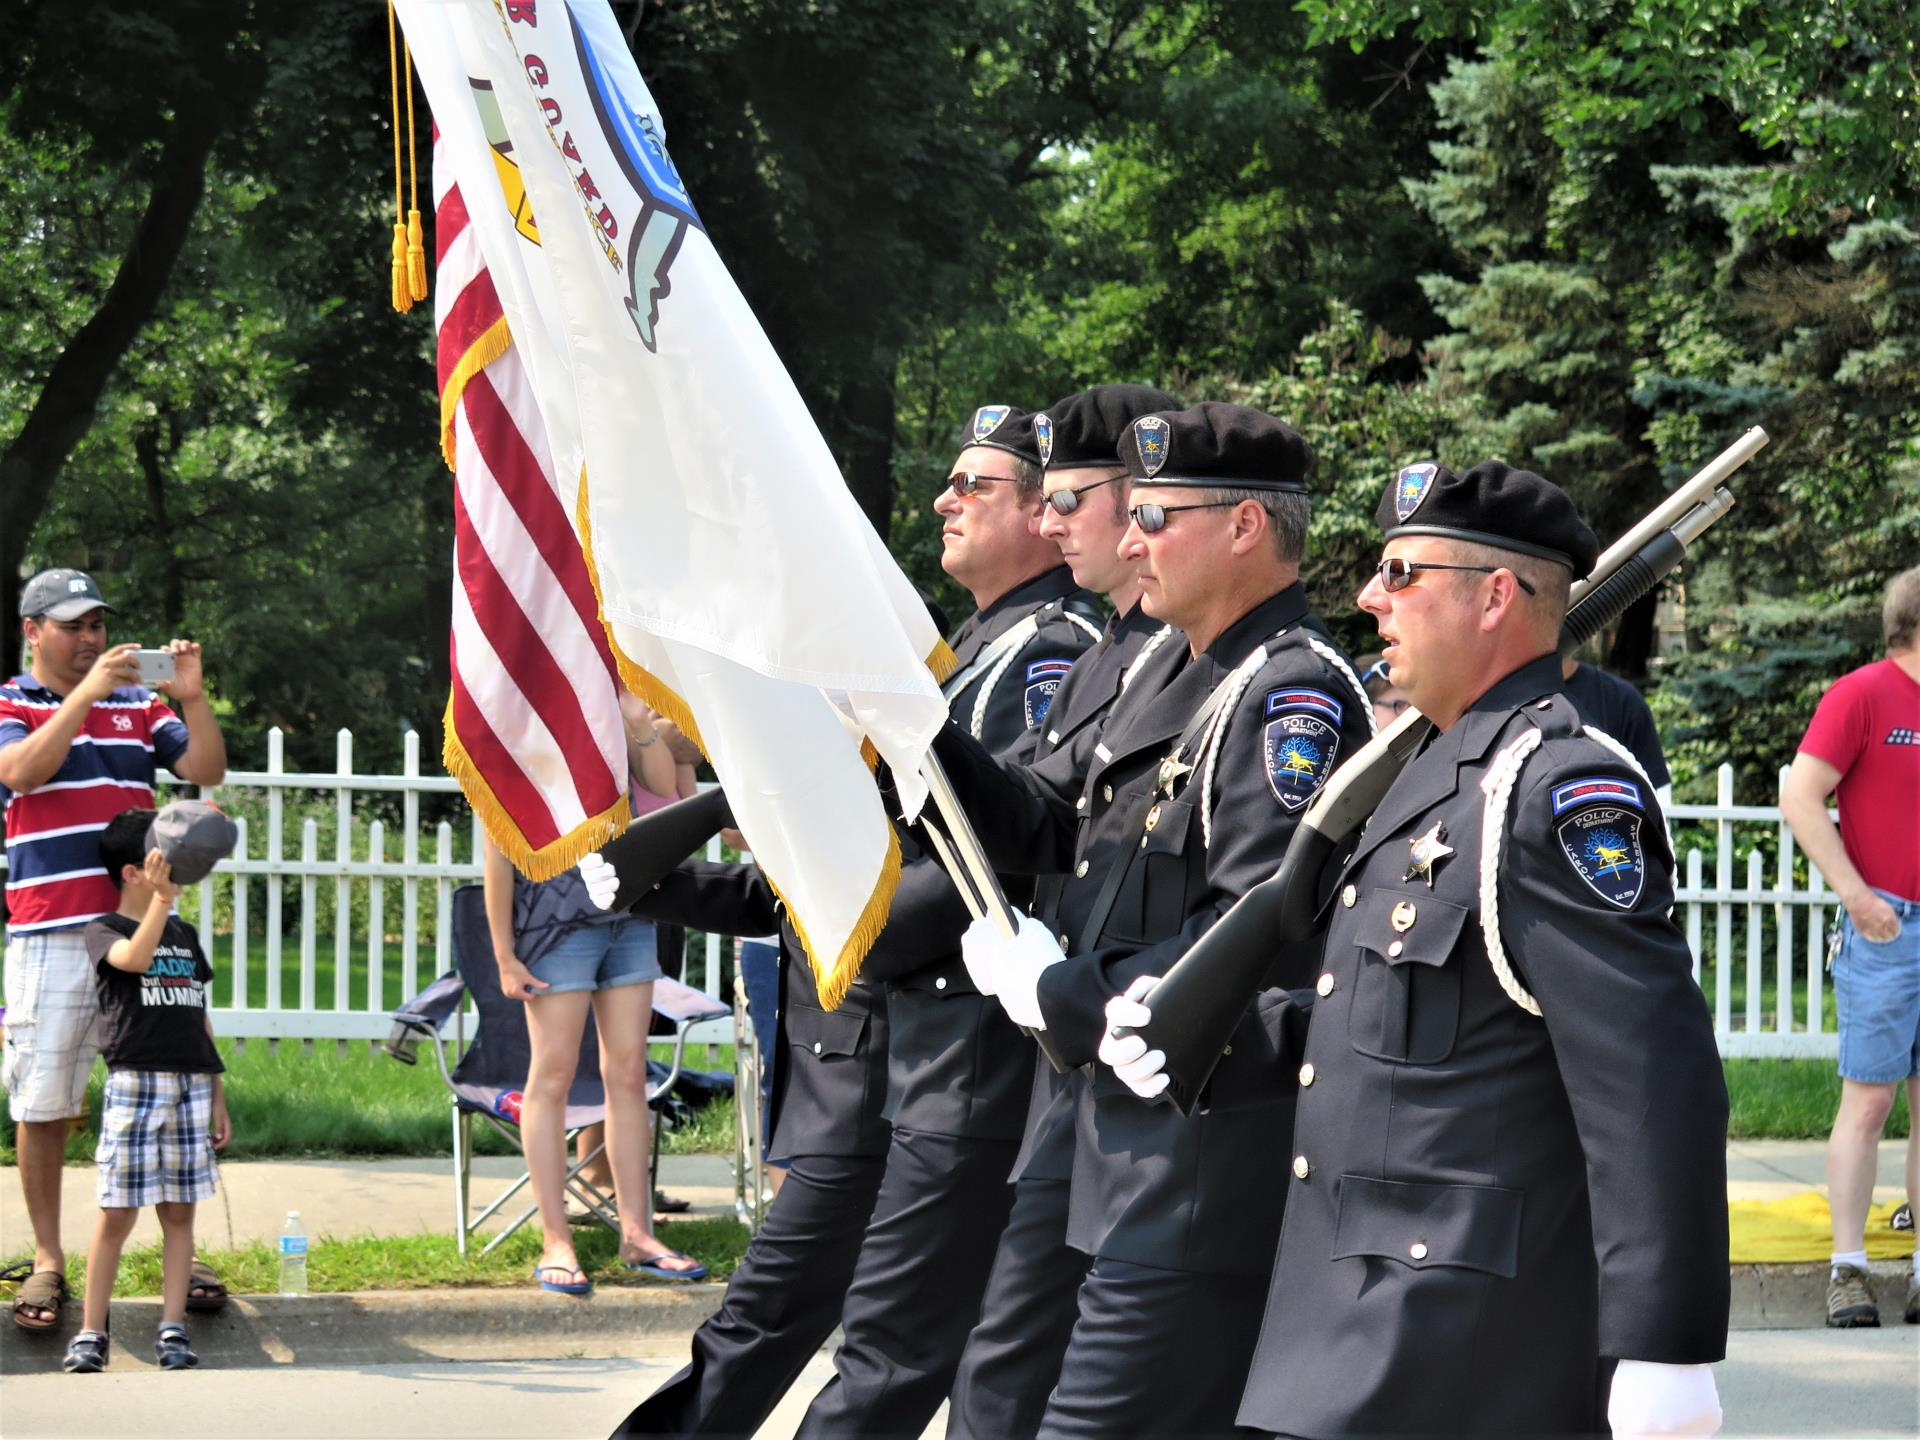 Police_4th_July_Parade